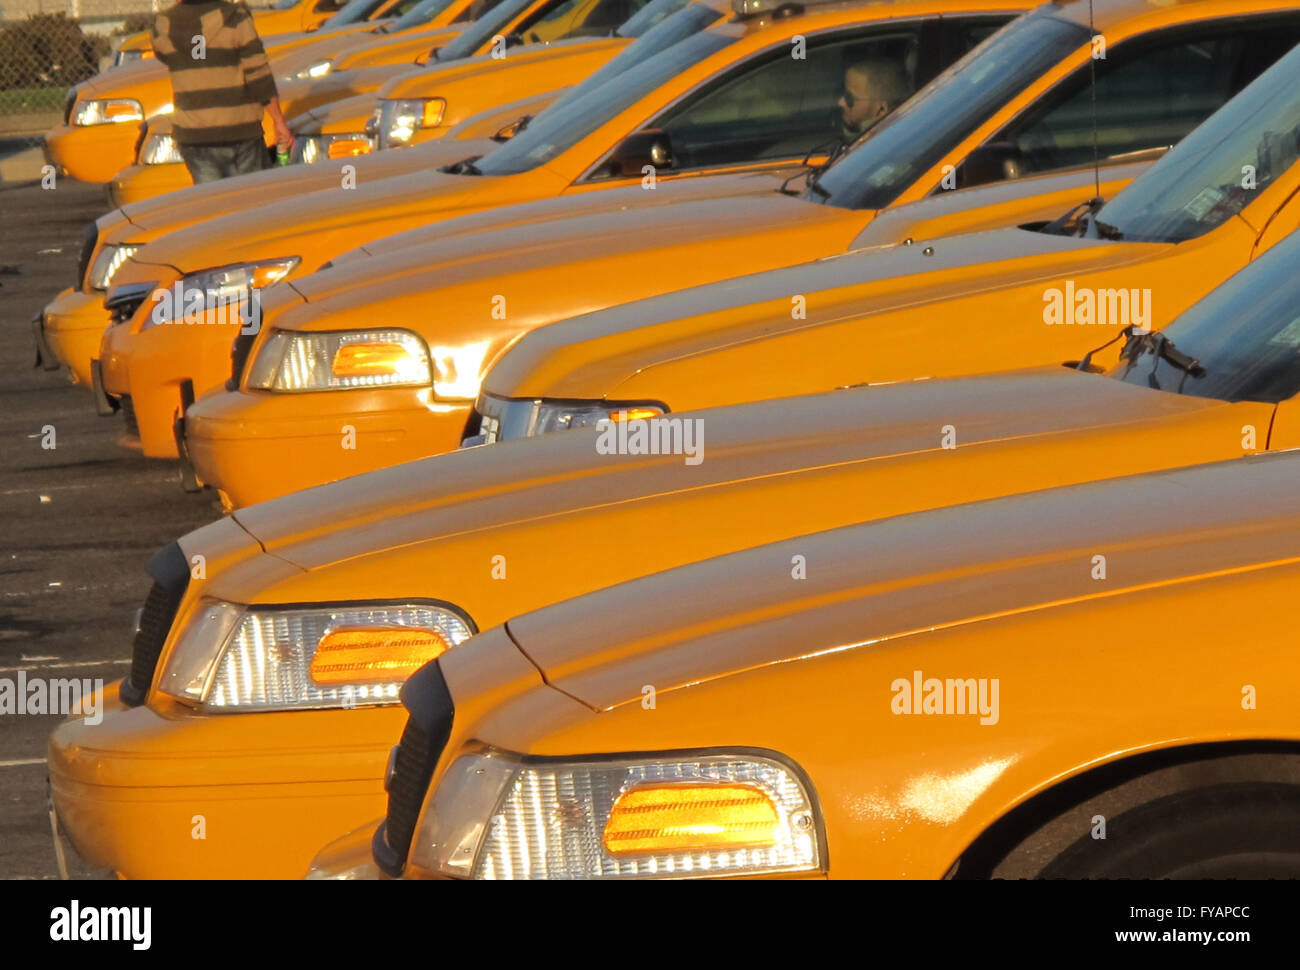 yellow cabs waiting in line at JFK' s Central Holding Lot waiting for their turn to go to terminals to pick - Stock Image